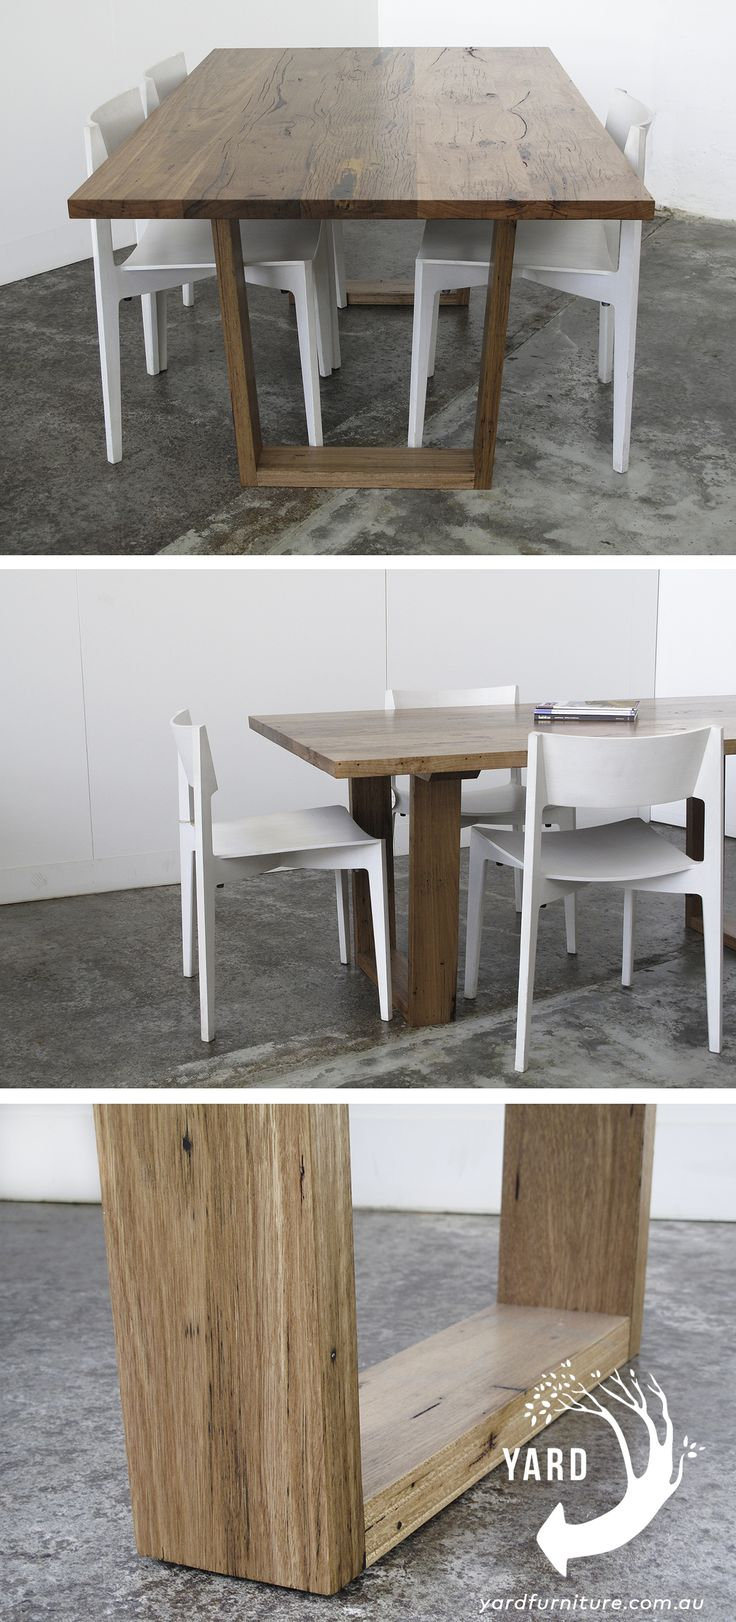 YARD furniture - Recycled timber furniture. Stanley Dining Table maybe from salvaged Yellow Stringy Bark Melbourne Australia